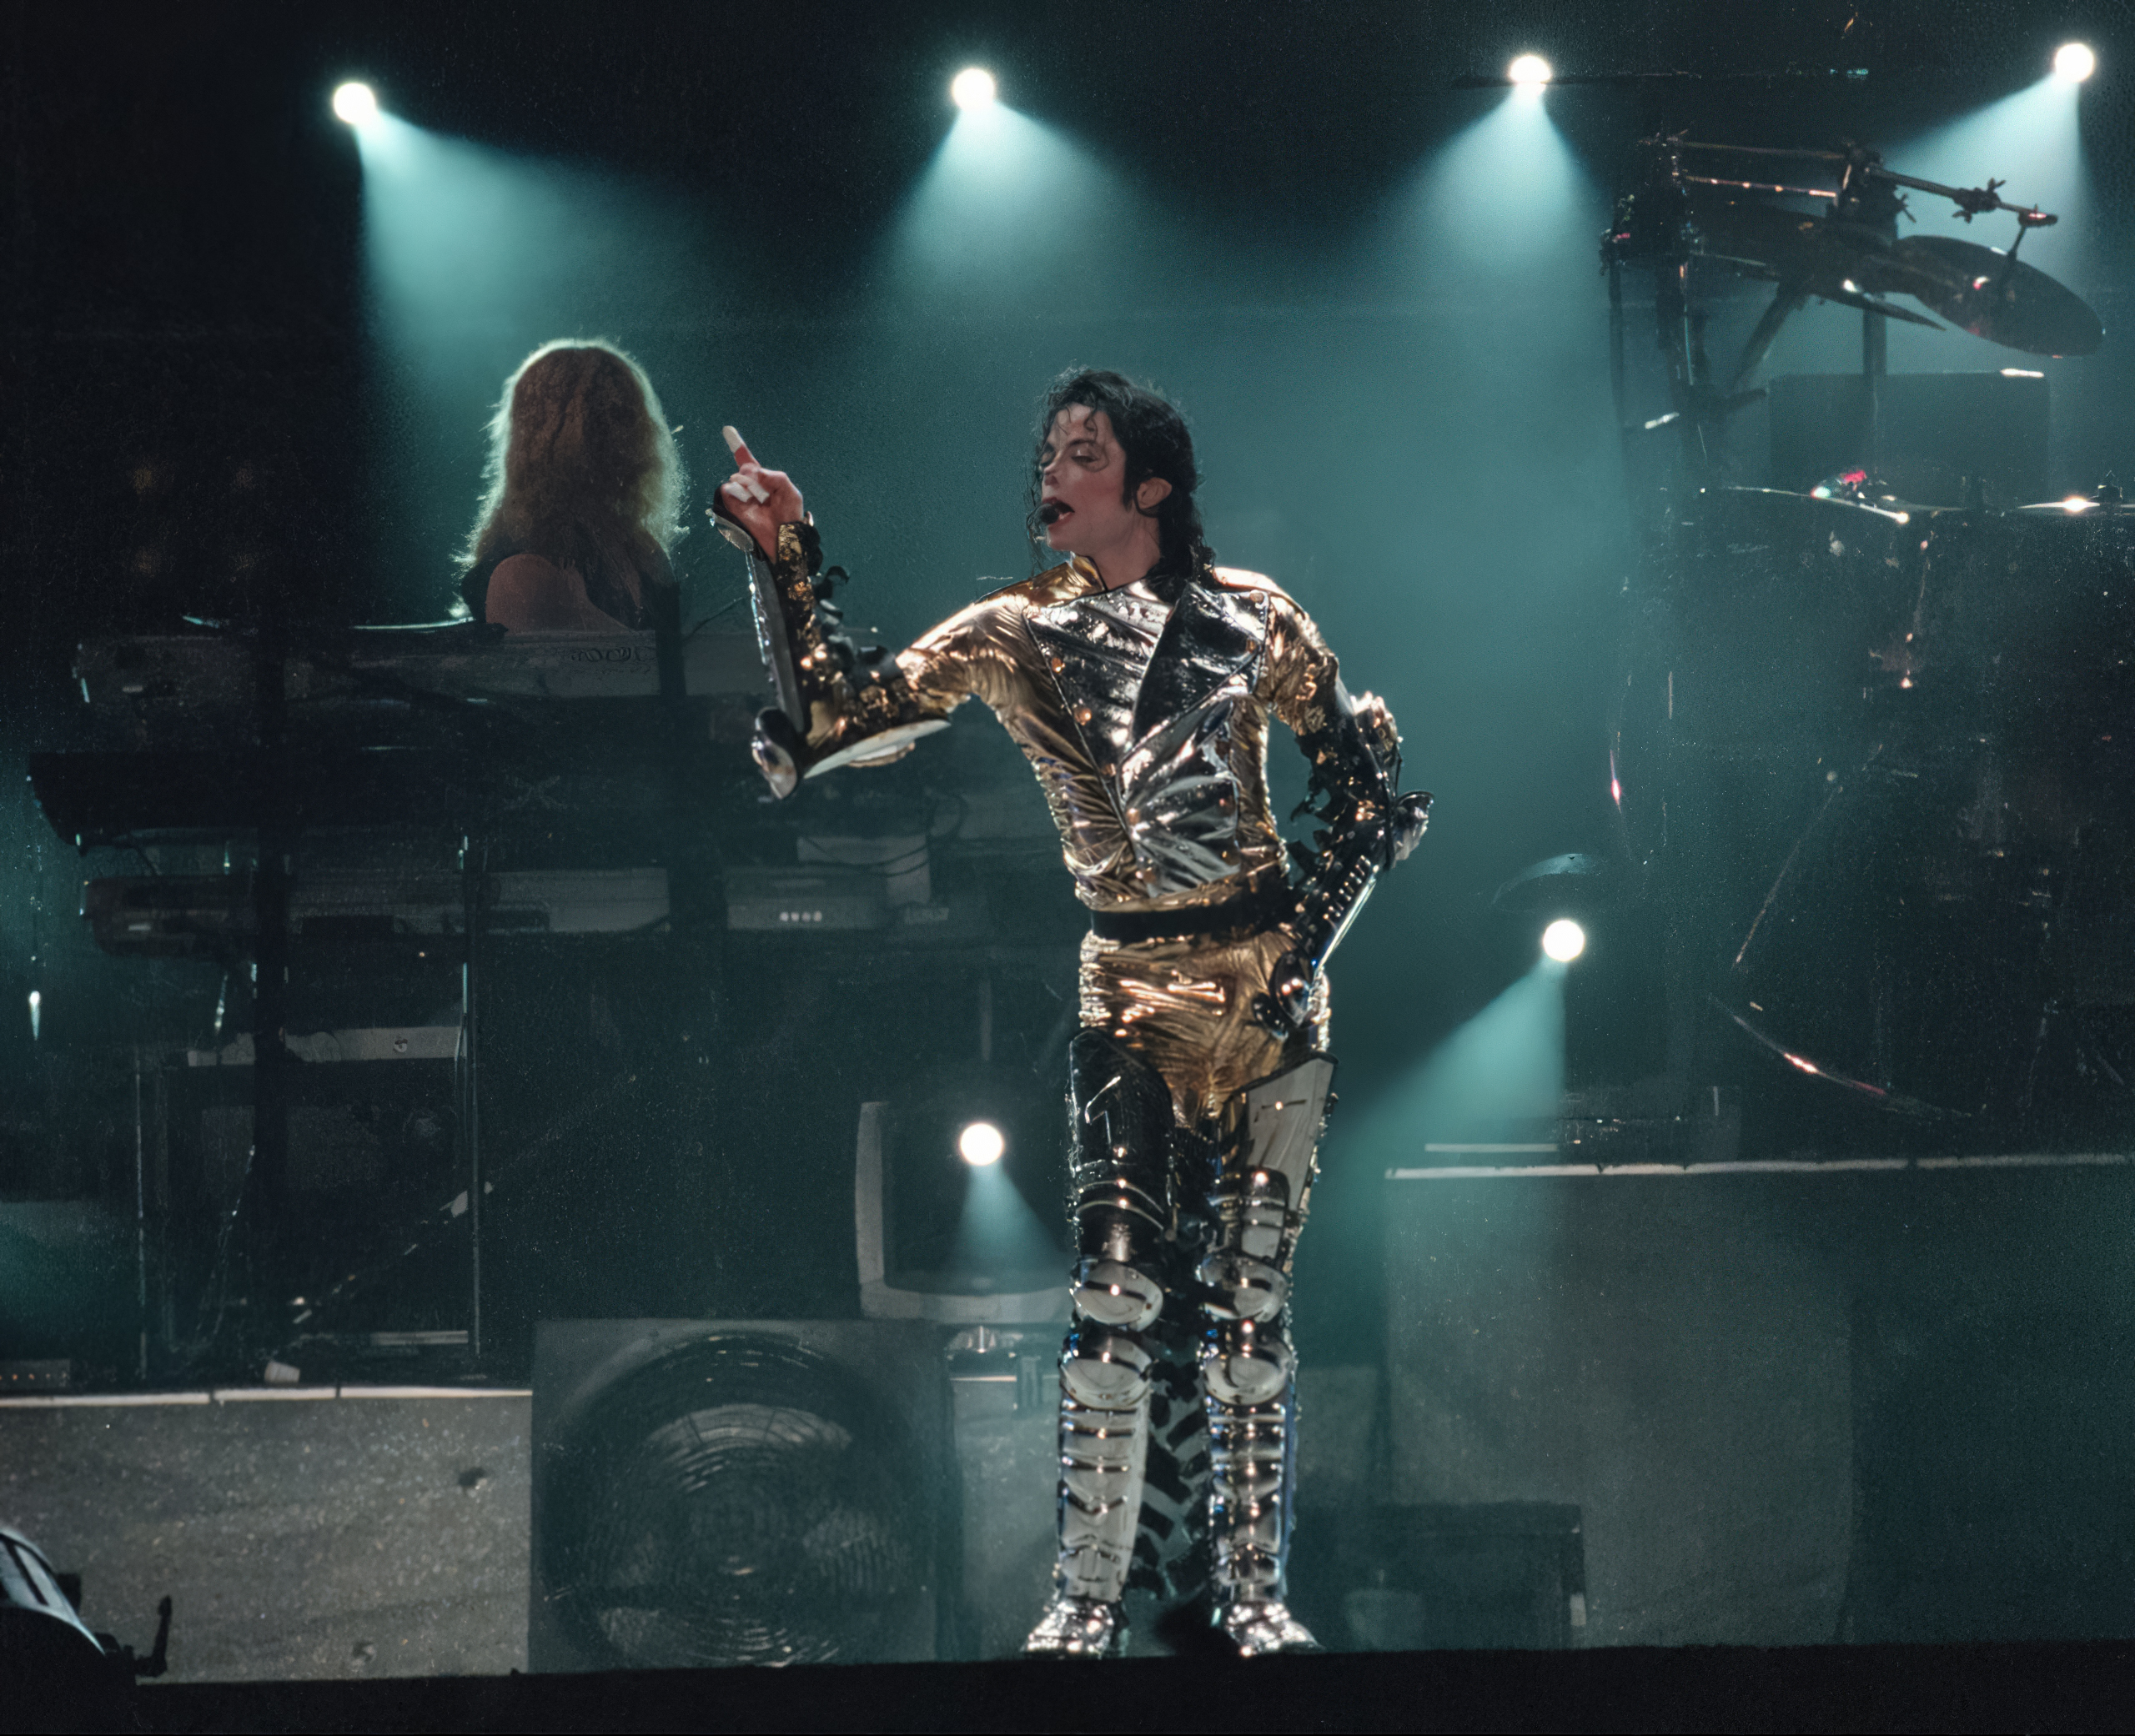 Michael-Jackson-performing-at-a-concert-in-Cape-Town-South-Africa11-10-97-Credit-WENN-PETER-MOREY.jpg